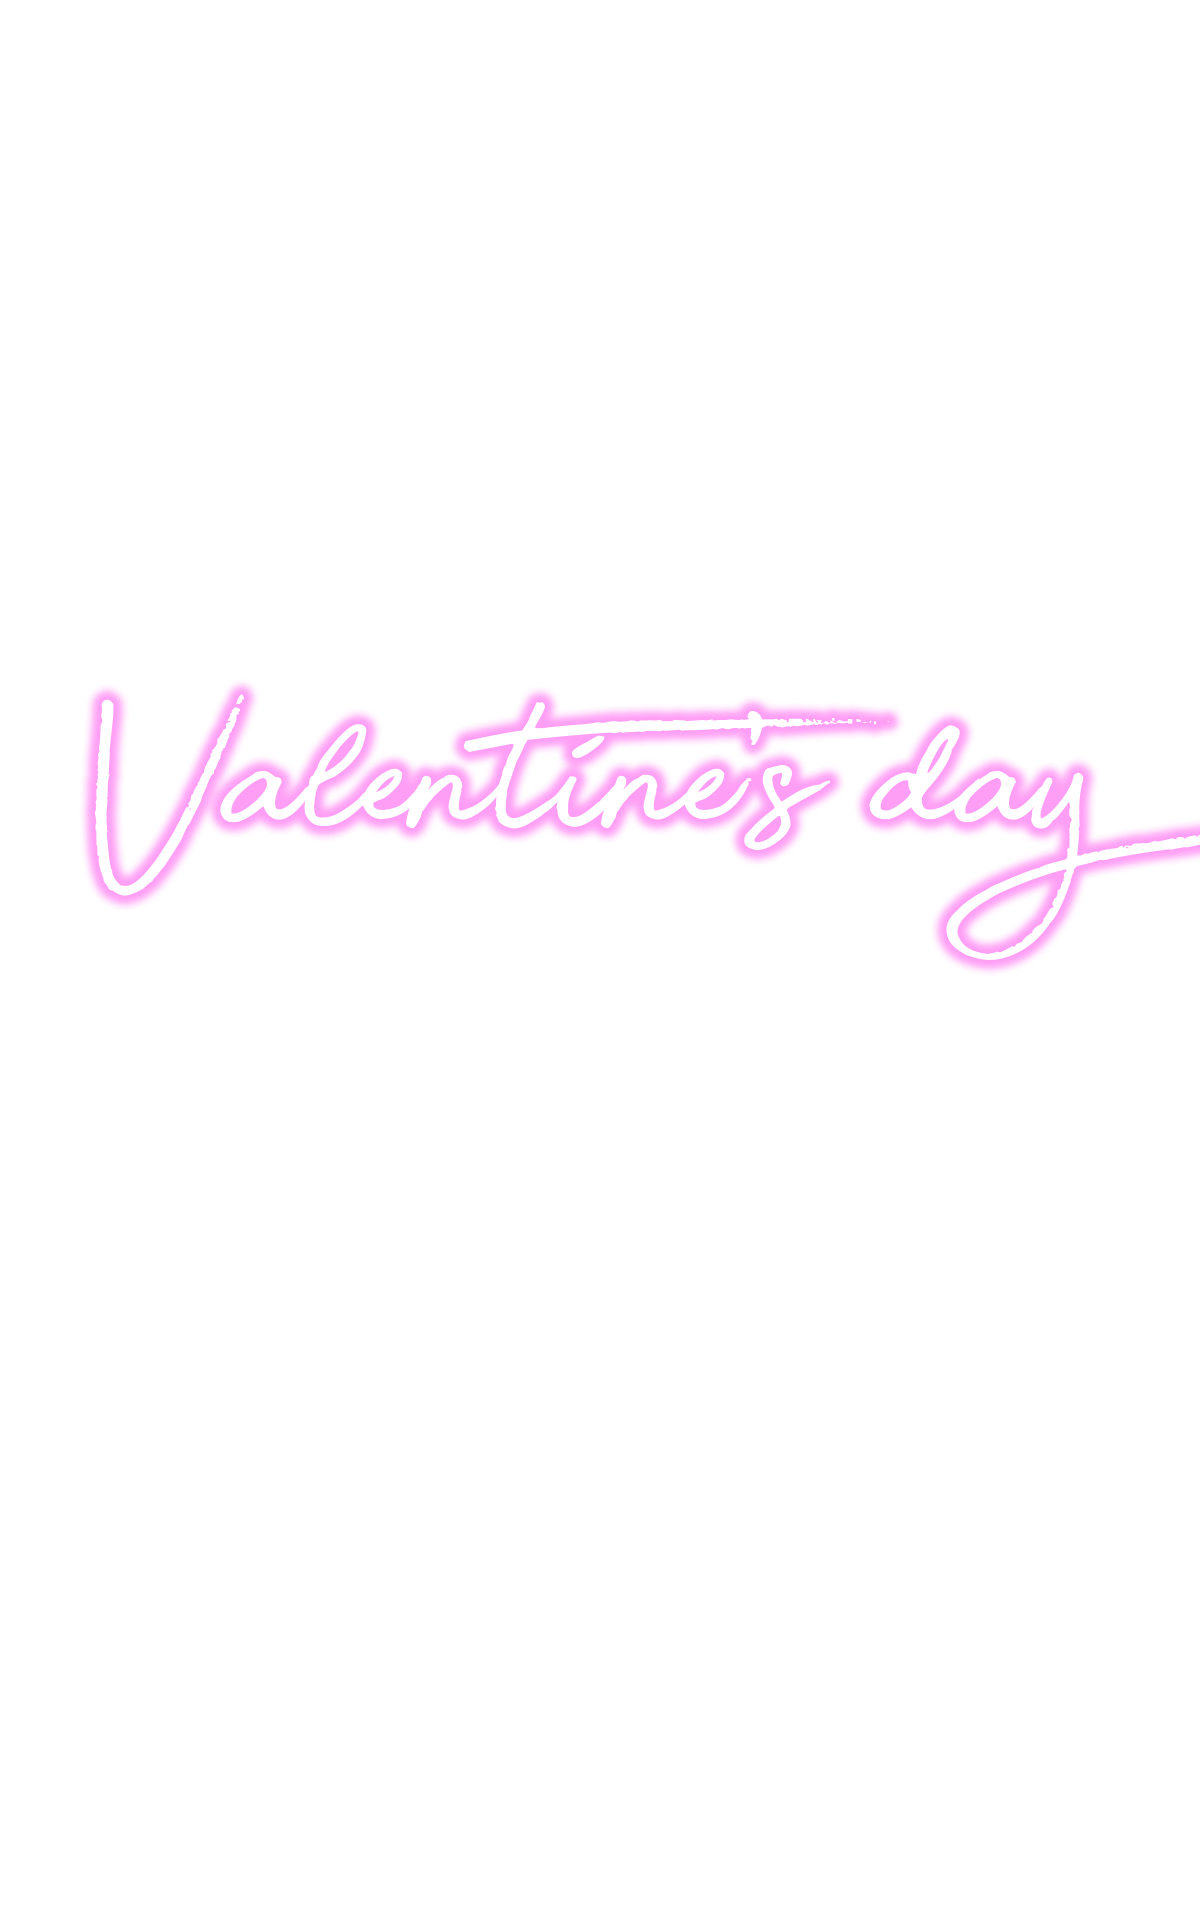 holiday 01 - valentine's day 2018